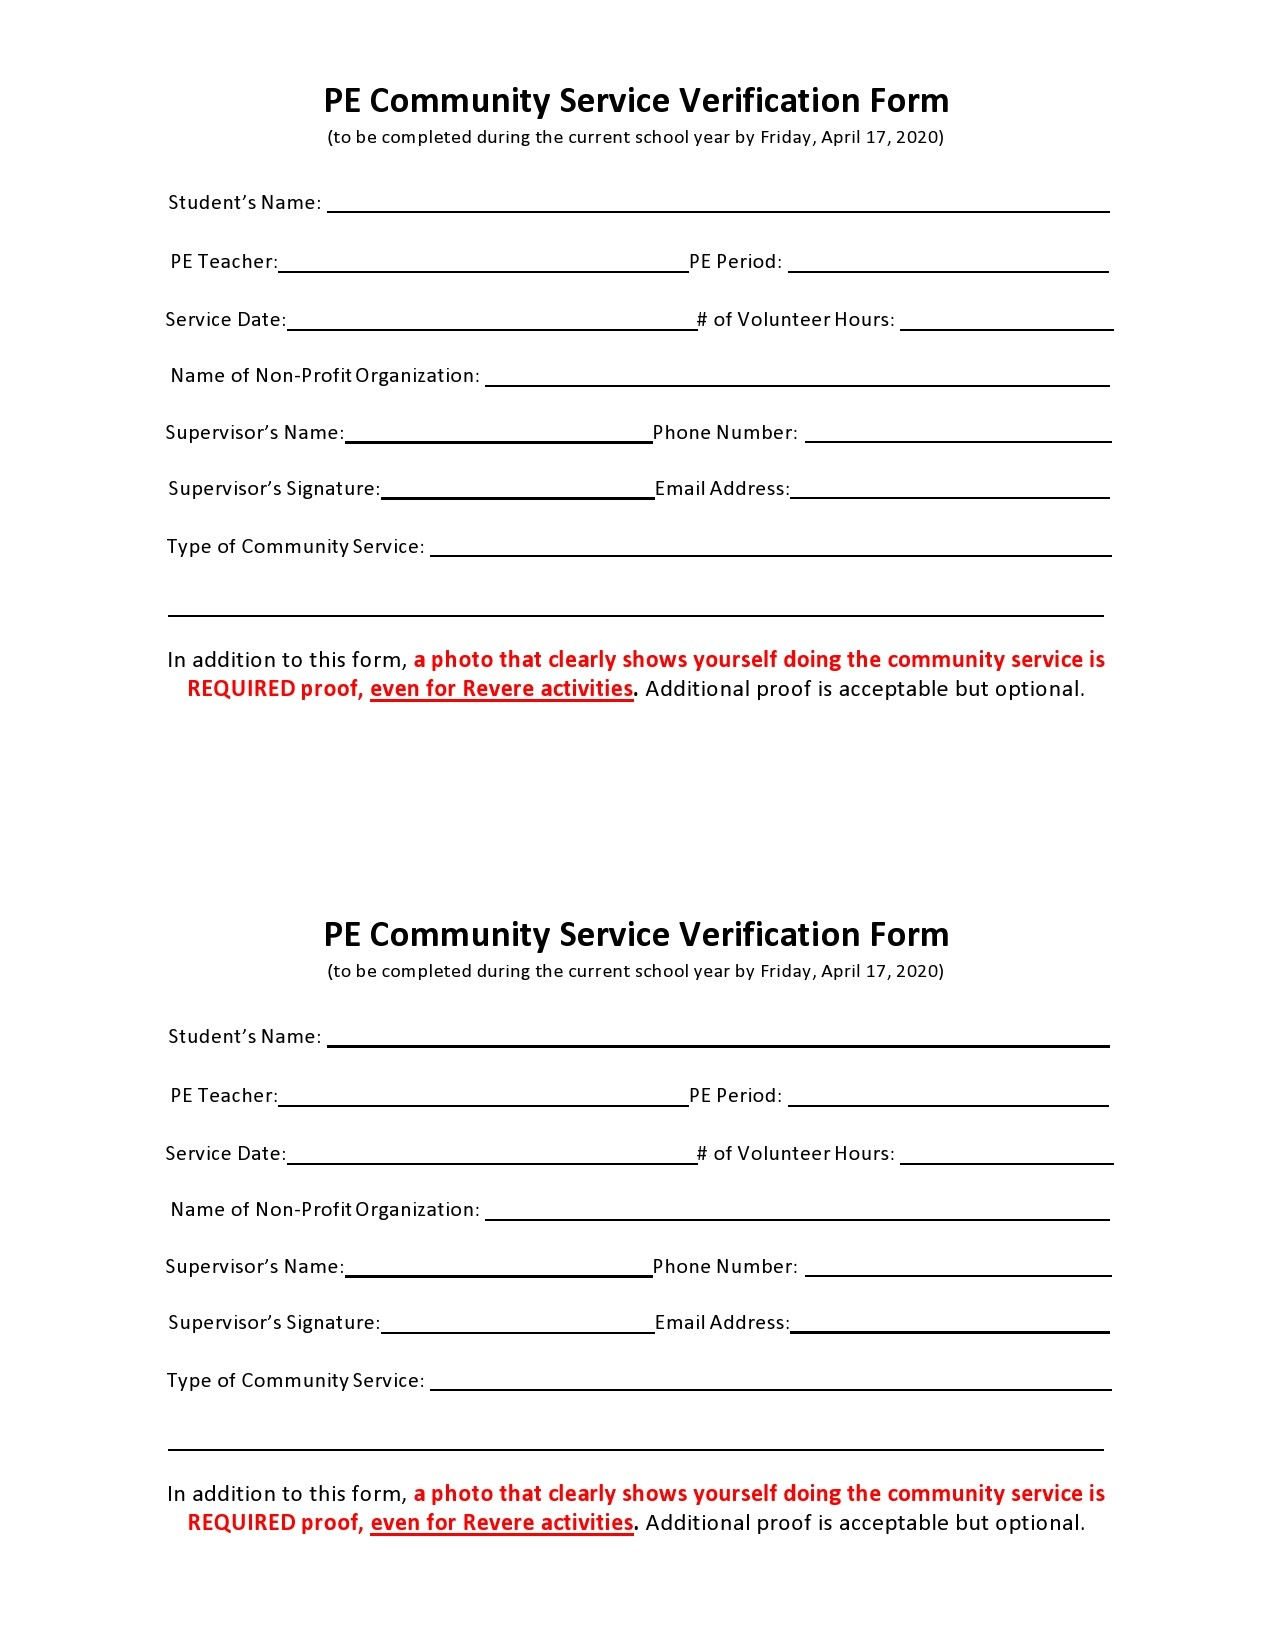 Free community service form 41